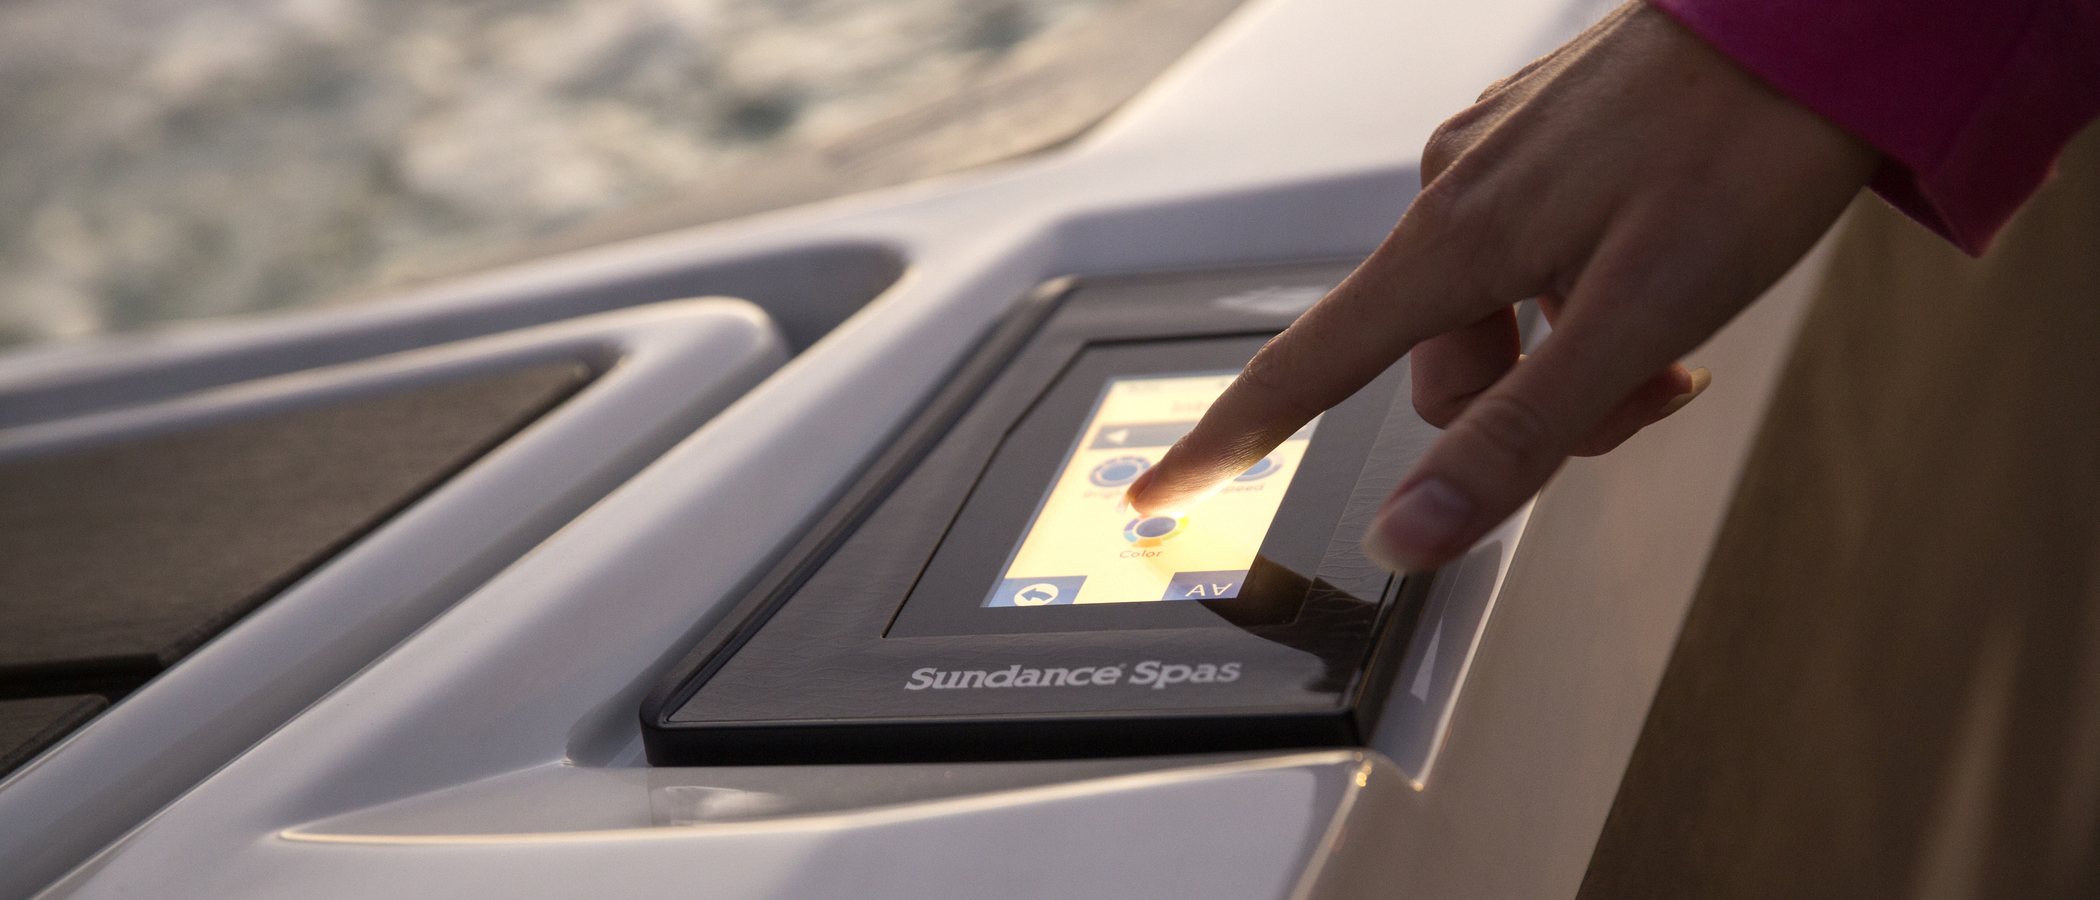 Controls and SmartTub™ System - Advanced i-Touch Glass Control panel with illuminated smartphone-inspired design eases use day or night and includes the SmartTub™ System for remote control and monitoring convenience.